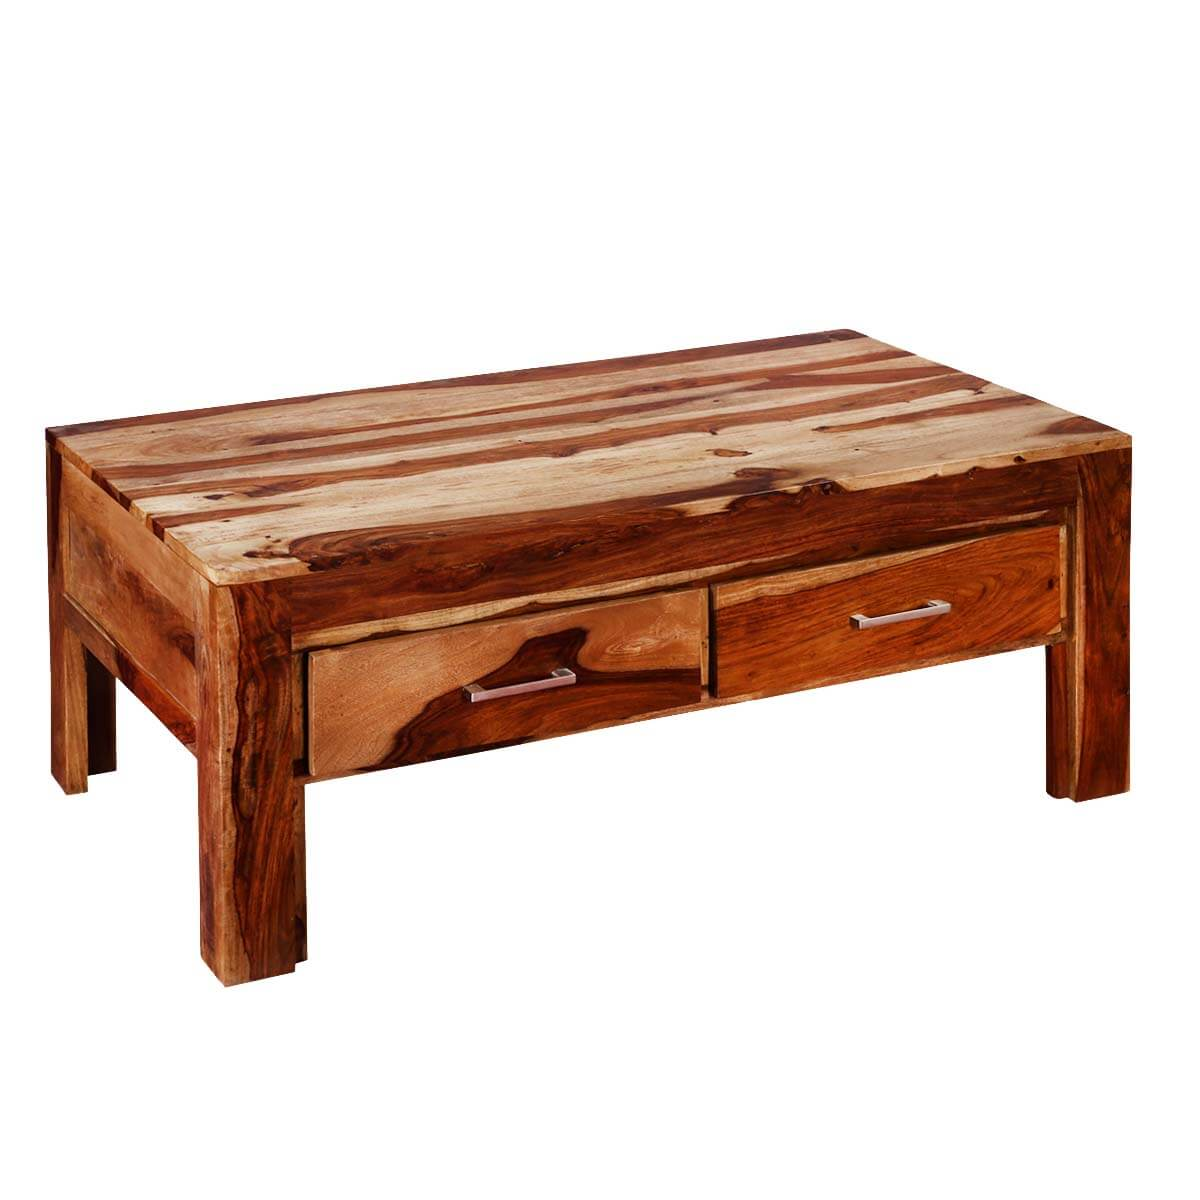 Frontier indian rosewood 45 coffee table w drawers modern frontier indian rosewood 45 coffee table w drawers geotapseo Choice Image